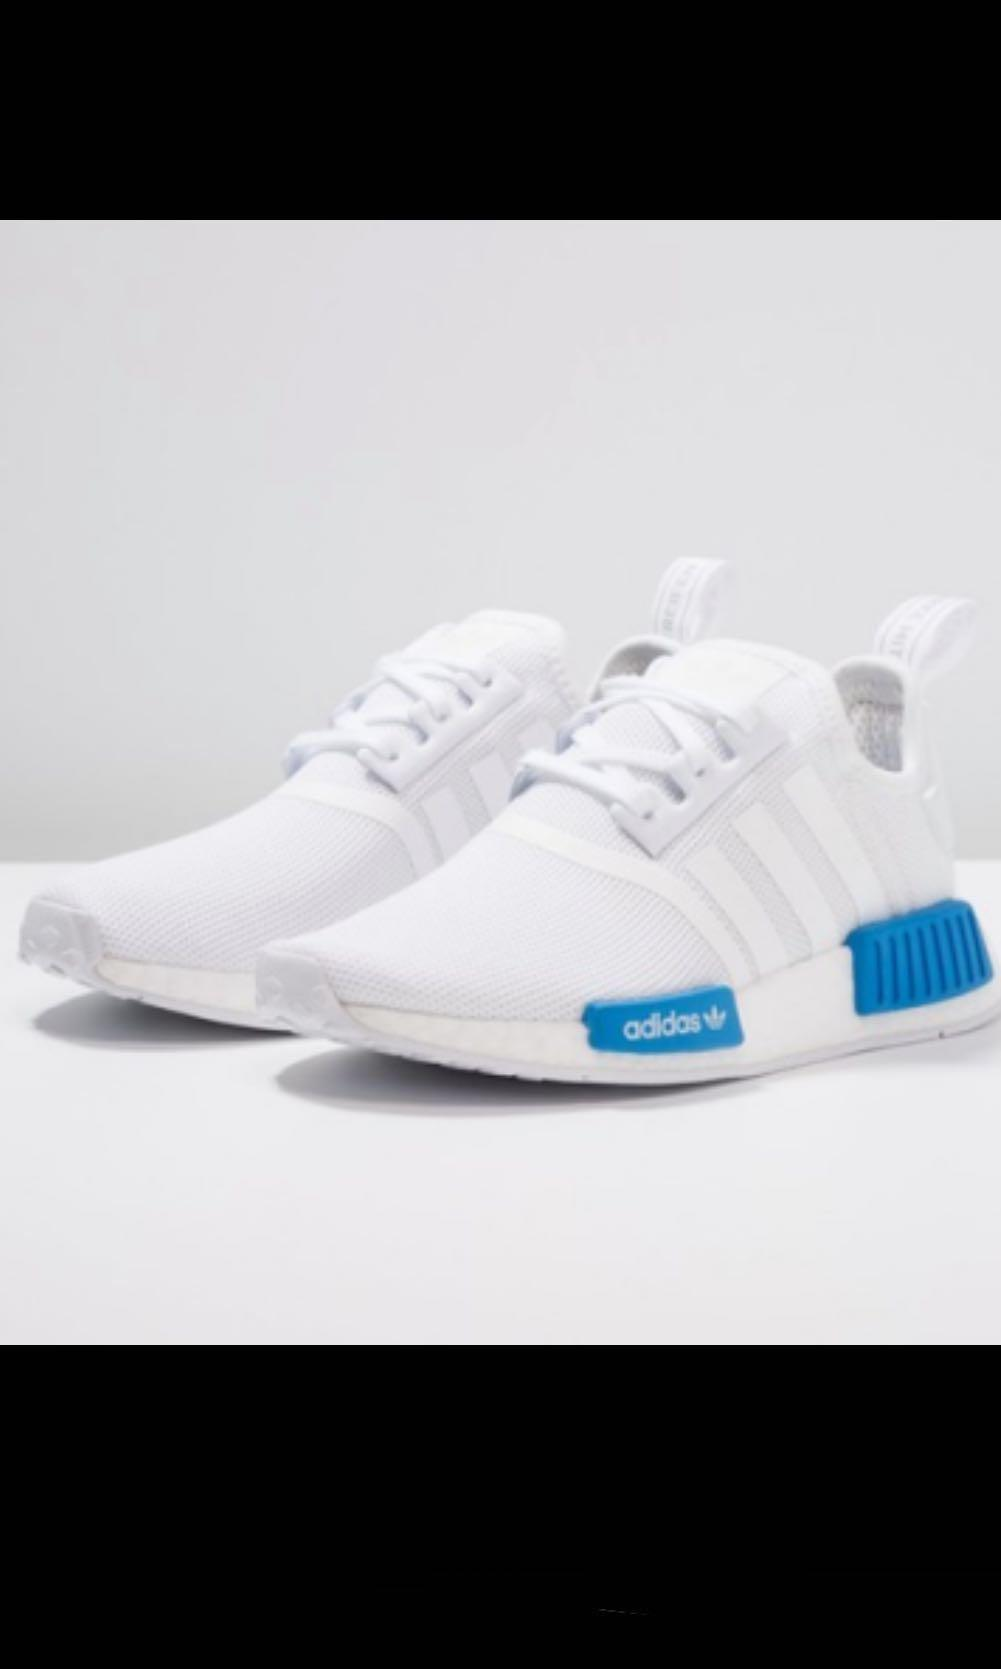 Clearance Sales ~ Adidas NMD, Women's